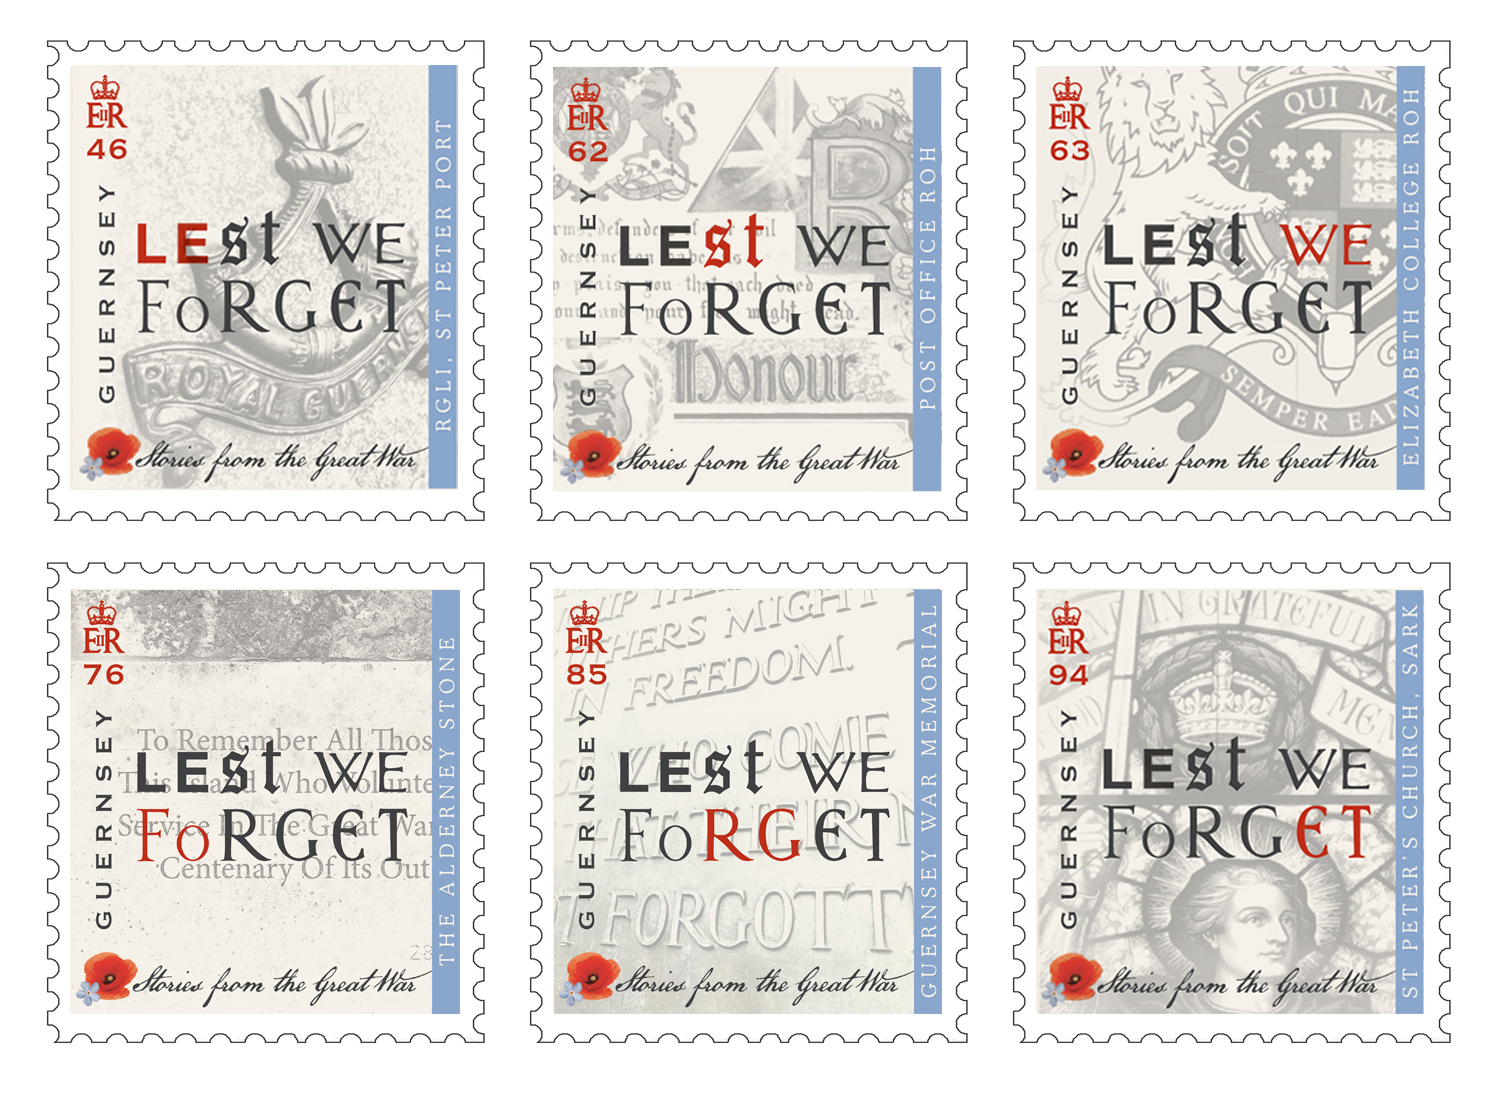 Guernsey Post Commemorates Centenary of The Great War with final stamps